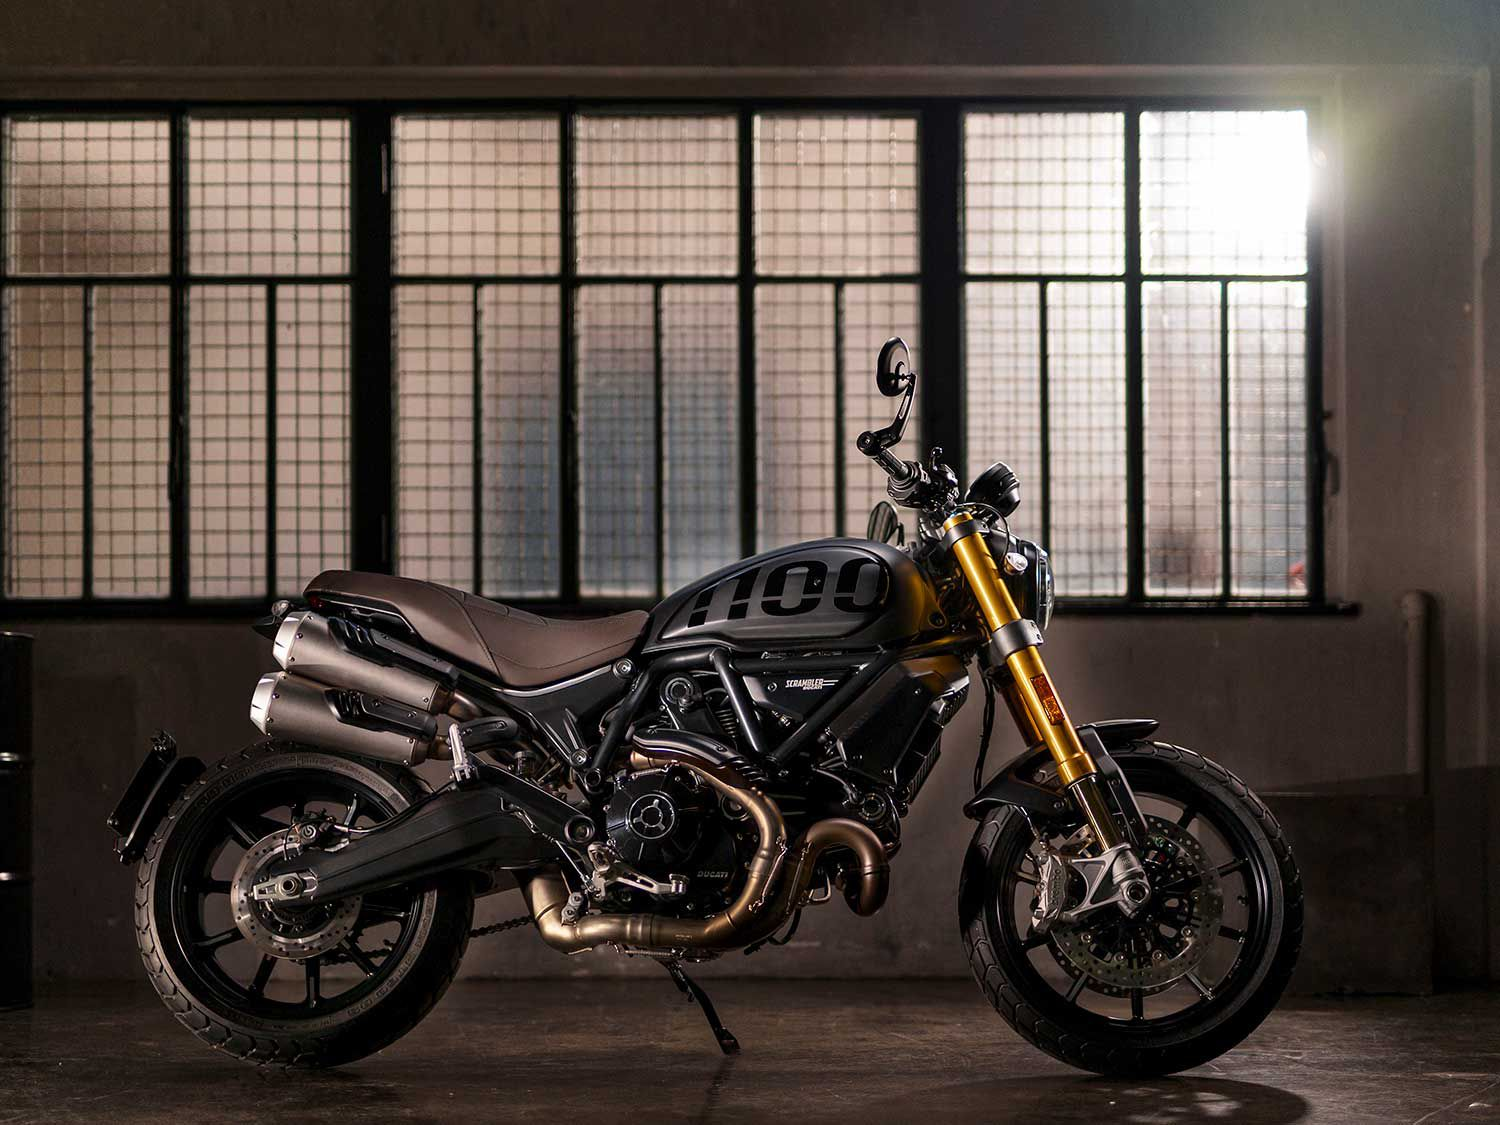 The Ducati Scrambler 1100 Sport PRO will be available in late March, and will start at $15,495.